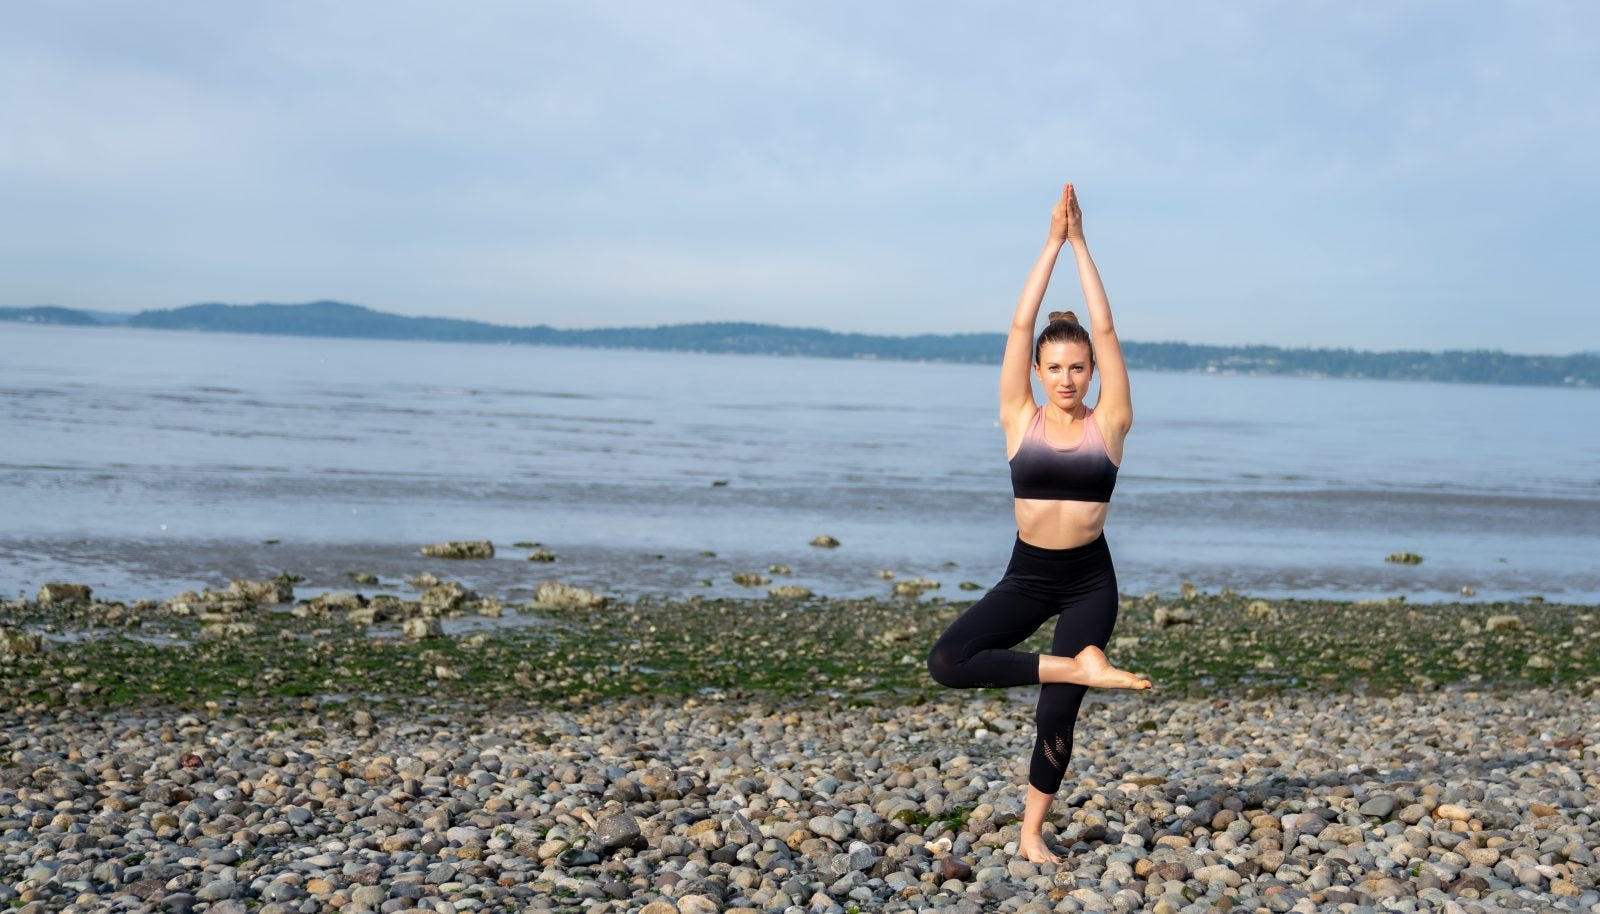 A woman in a yoga pose on a pebbled beach.